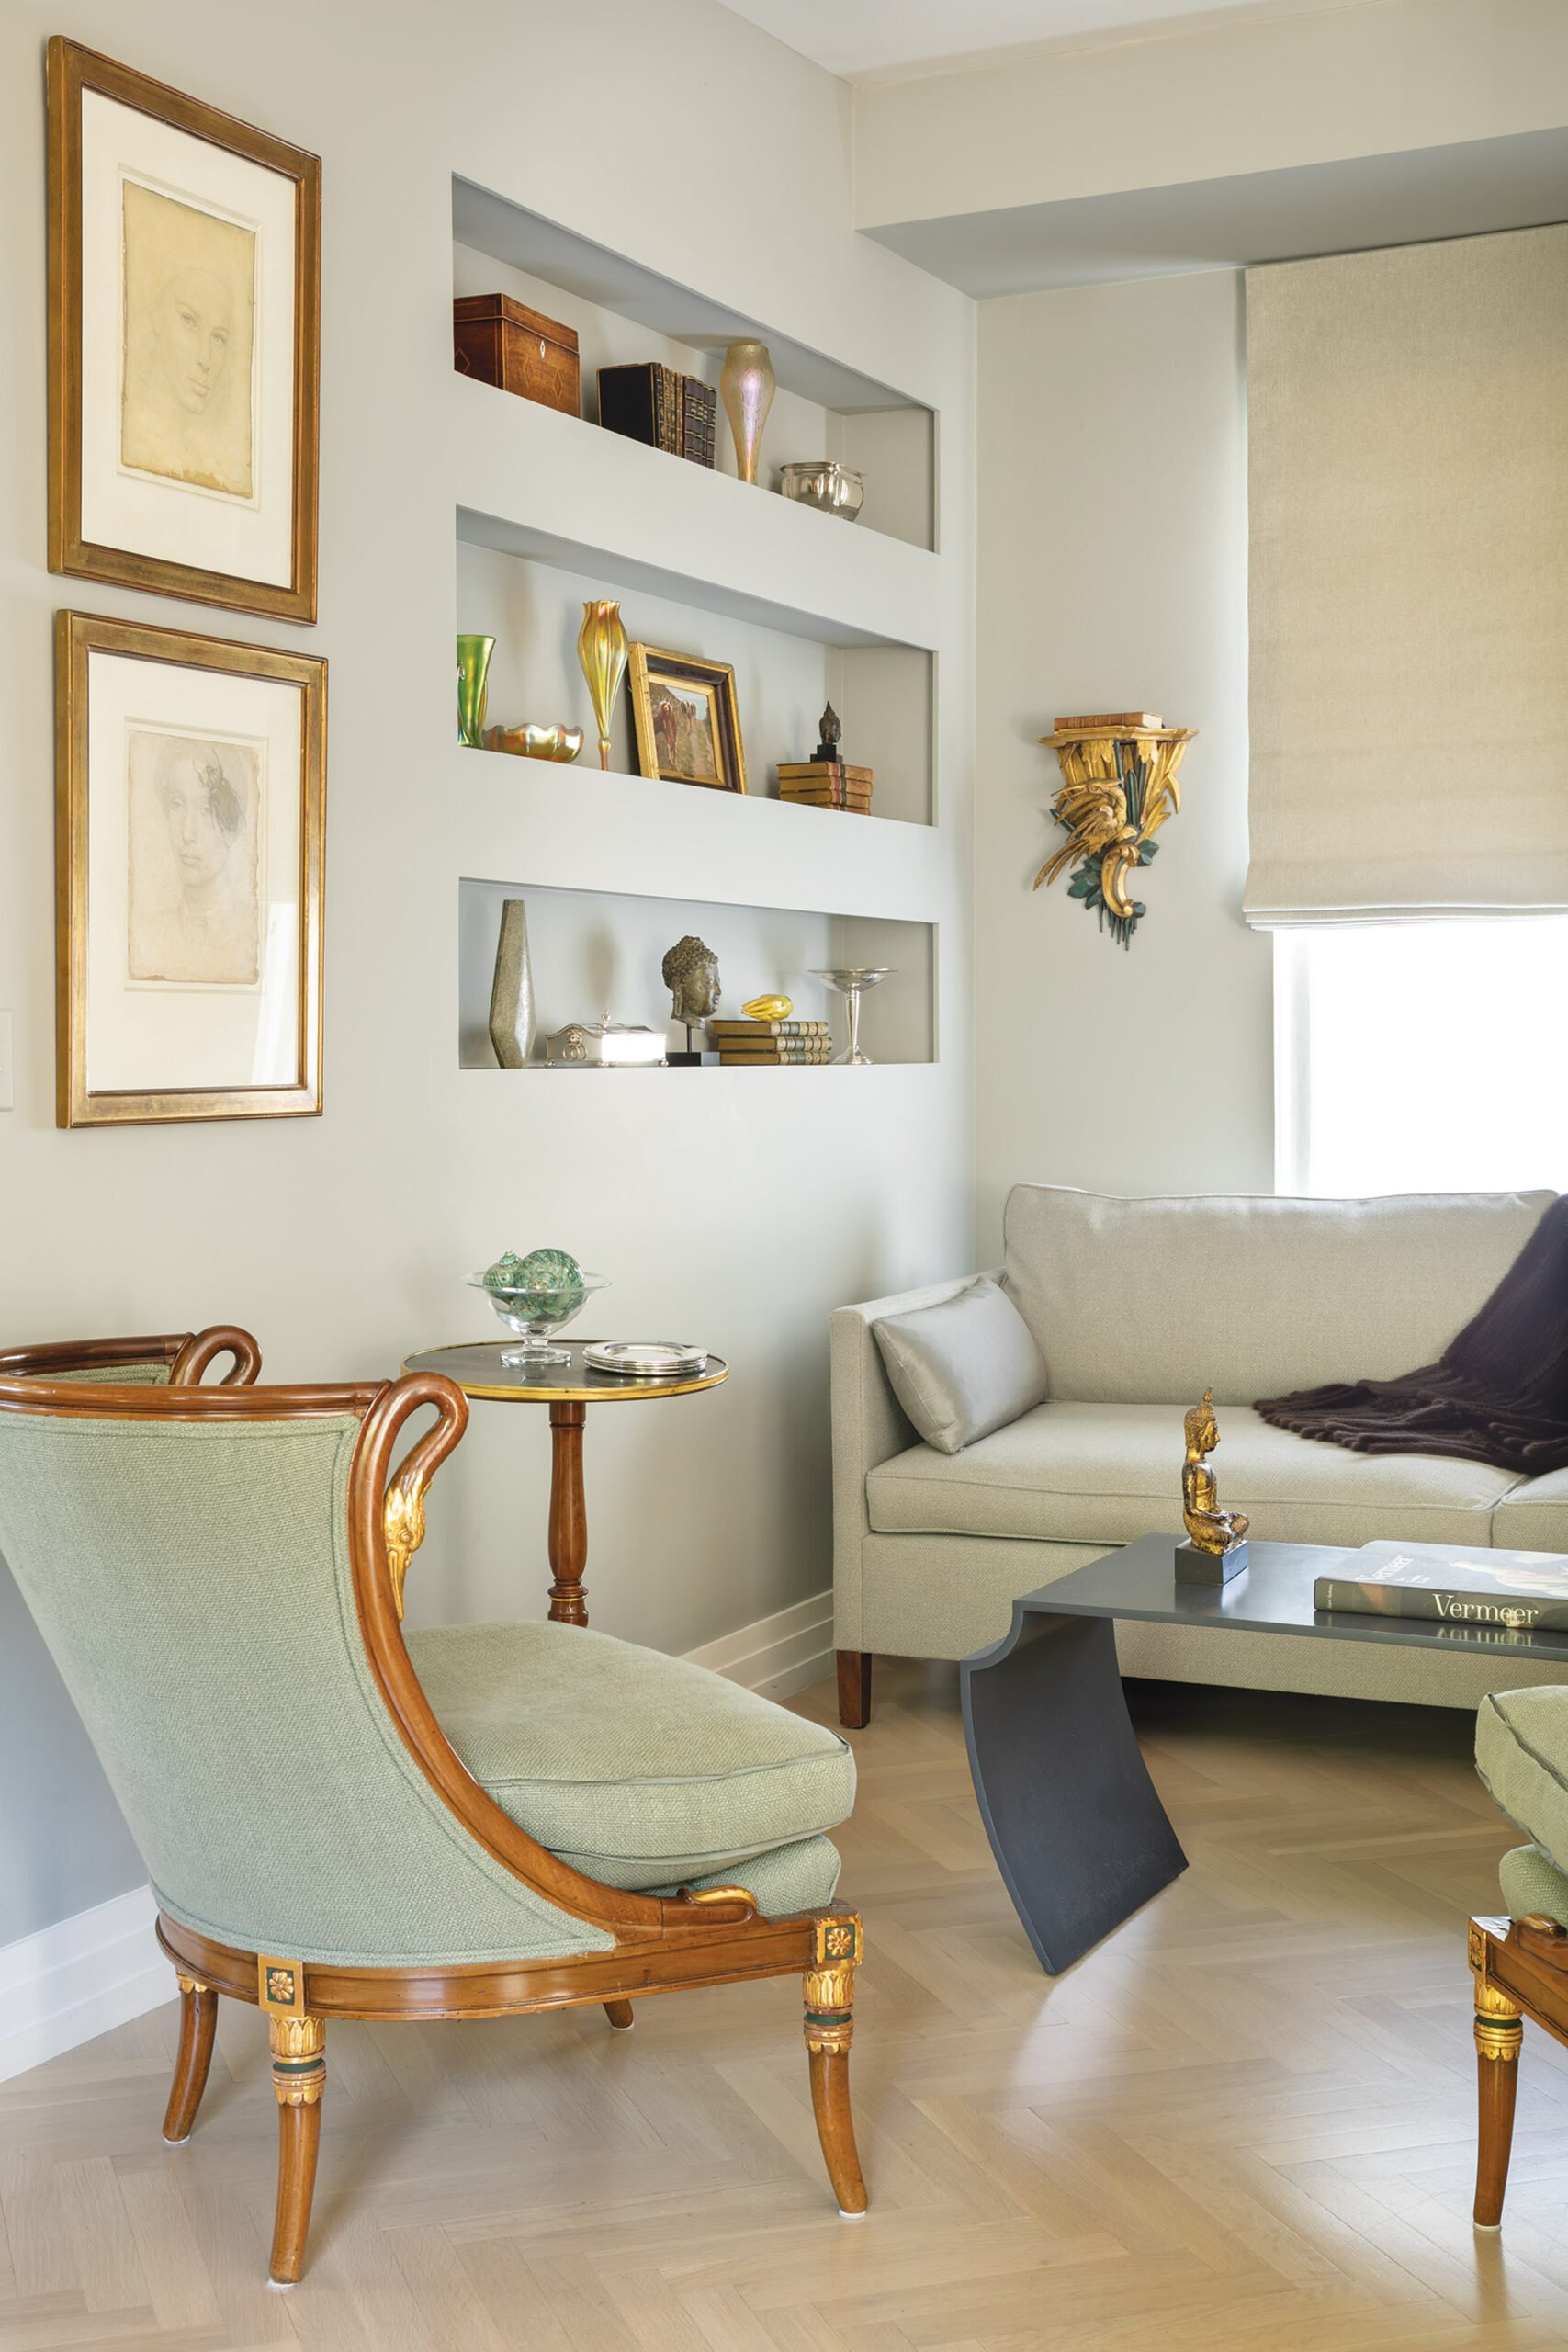 Sitting area with linear shelves, Dessin Fournir sofa and Louis Philippe wood-framed chairs